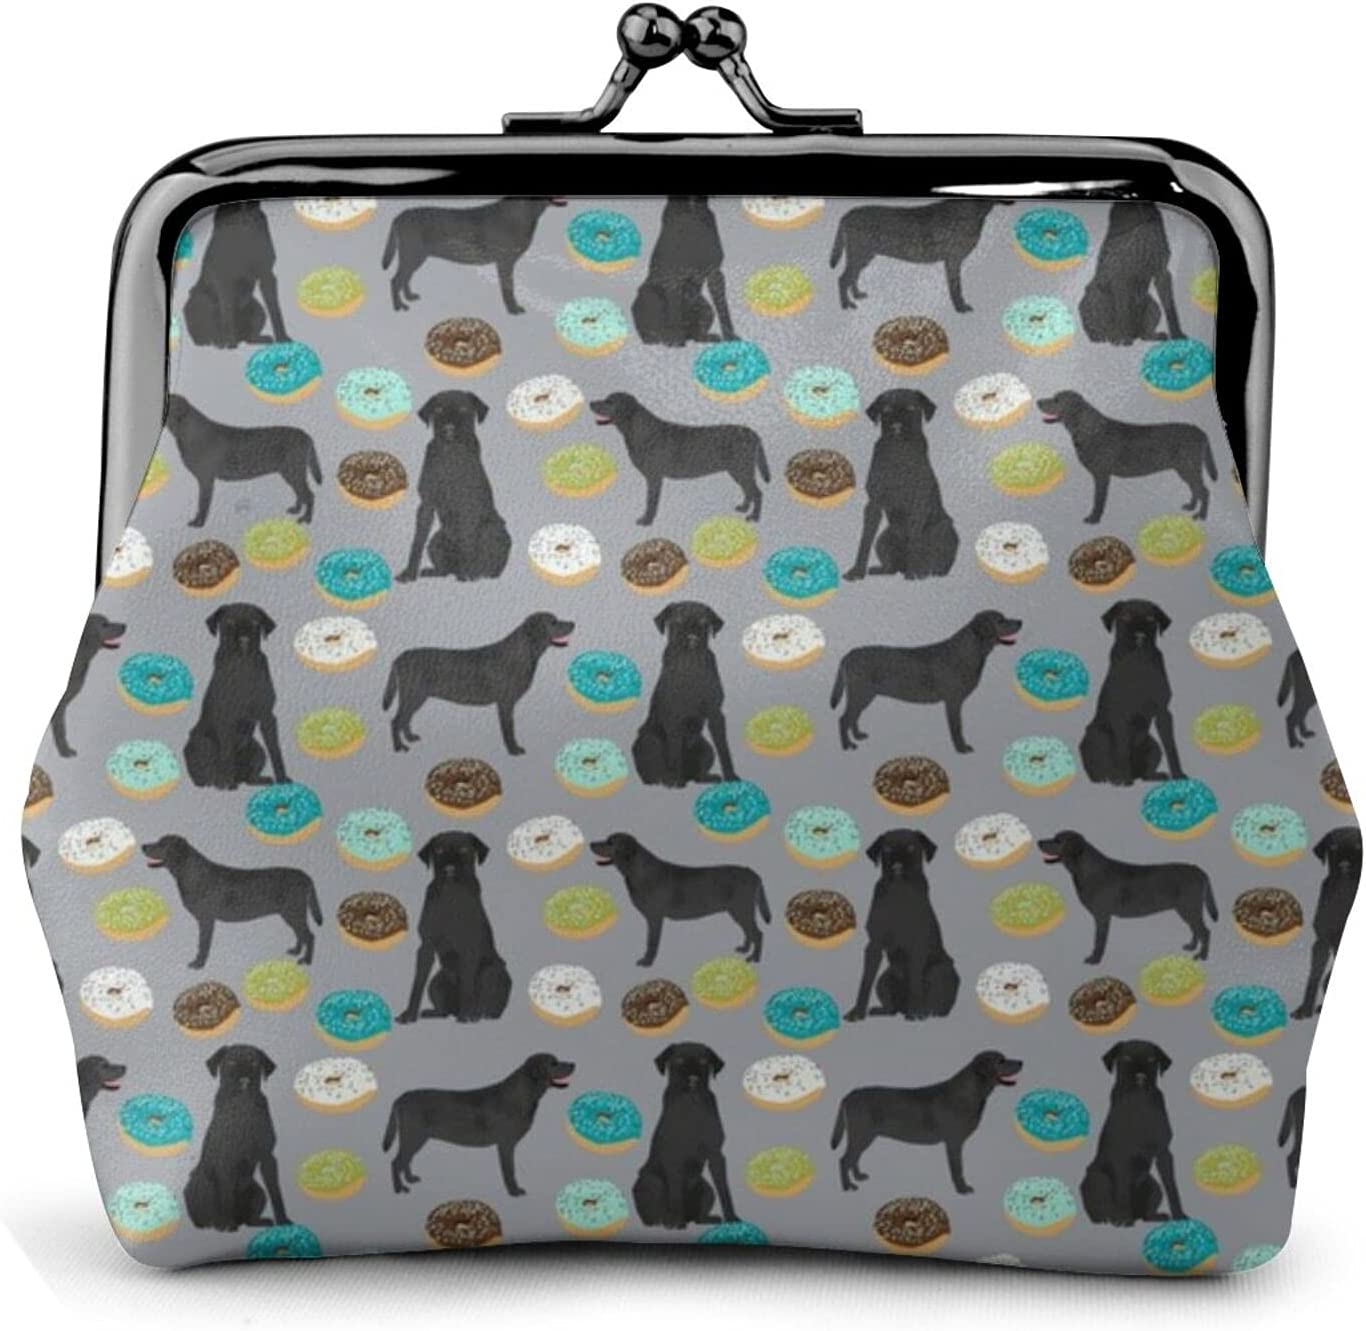 Black Labrador Donuts 610 Coin Purse Retro Money Pouch with Kiss-lock Buckle Small Wallet for Women and Girls